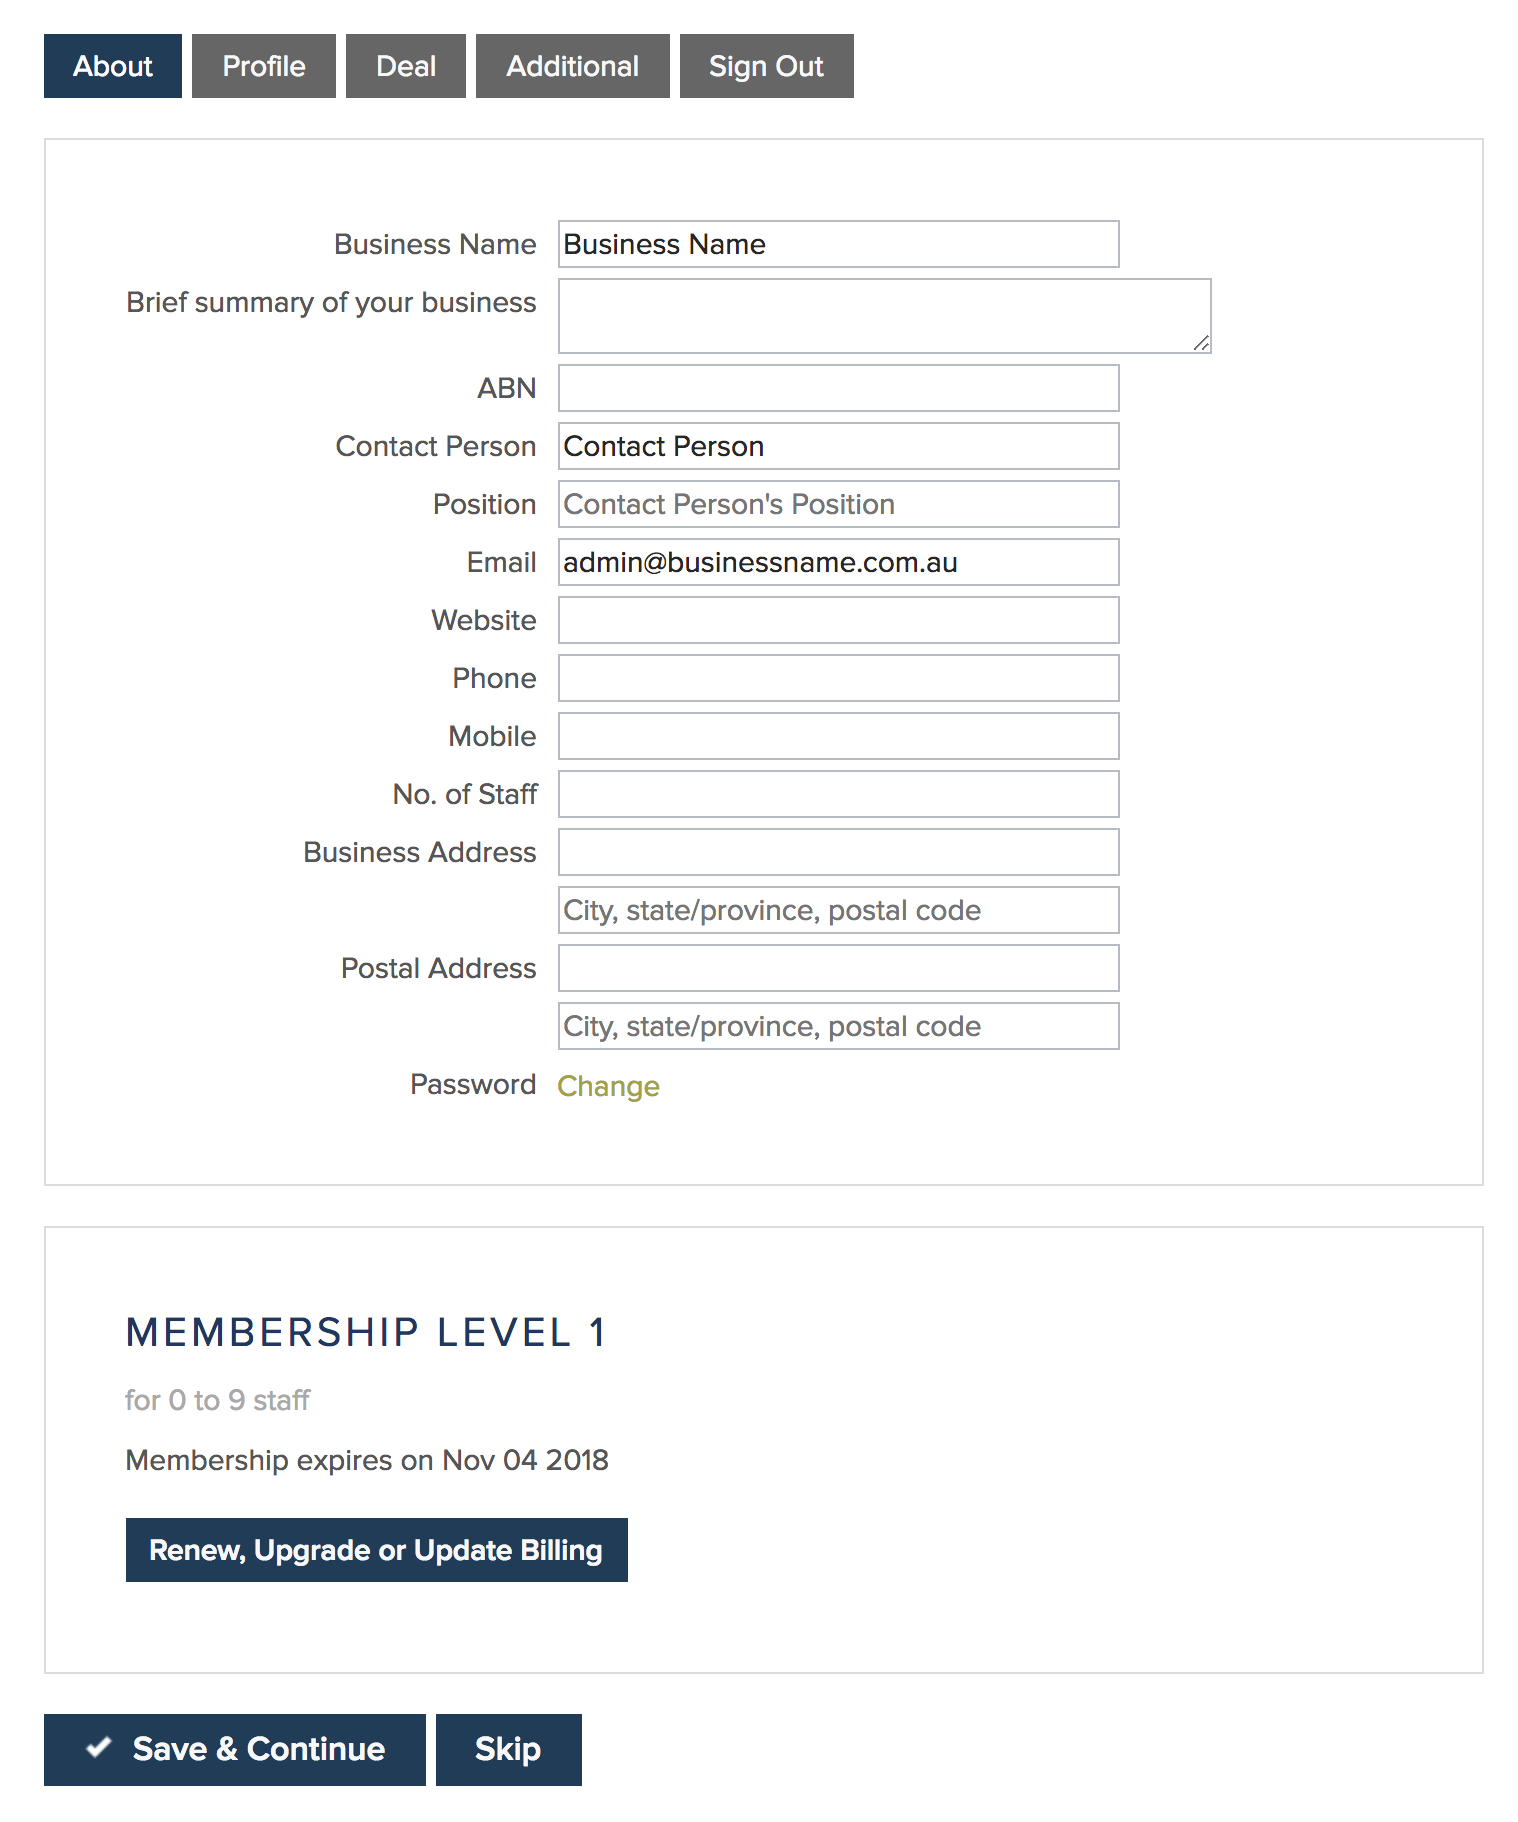 Member Profile - About Panel